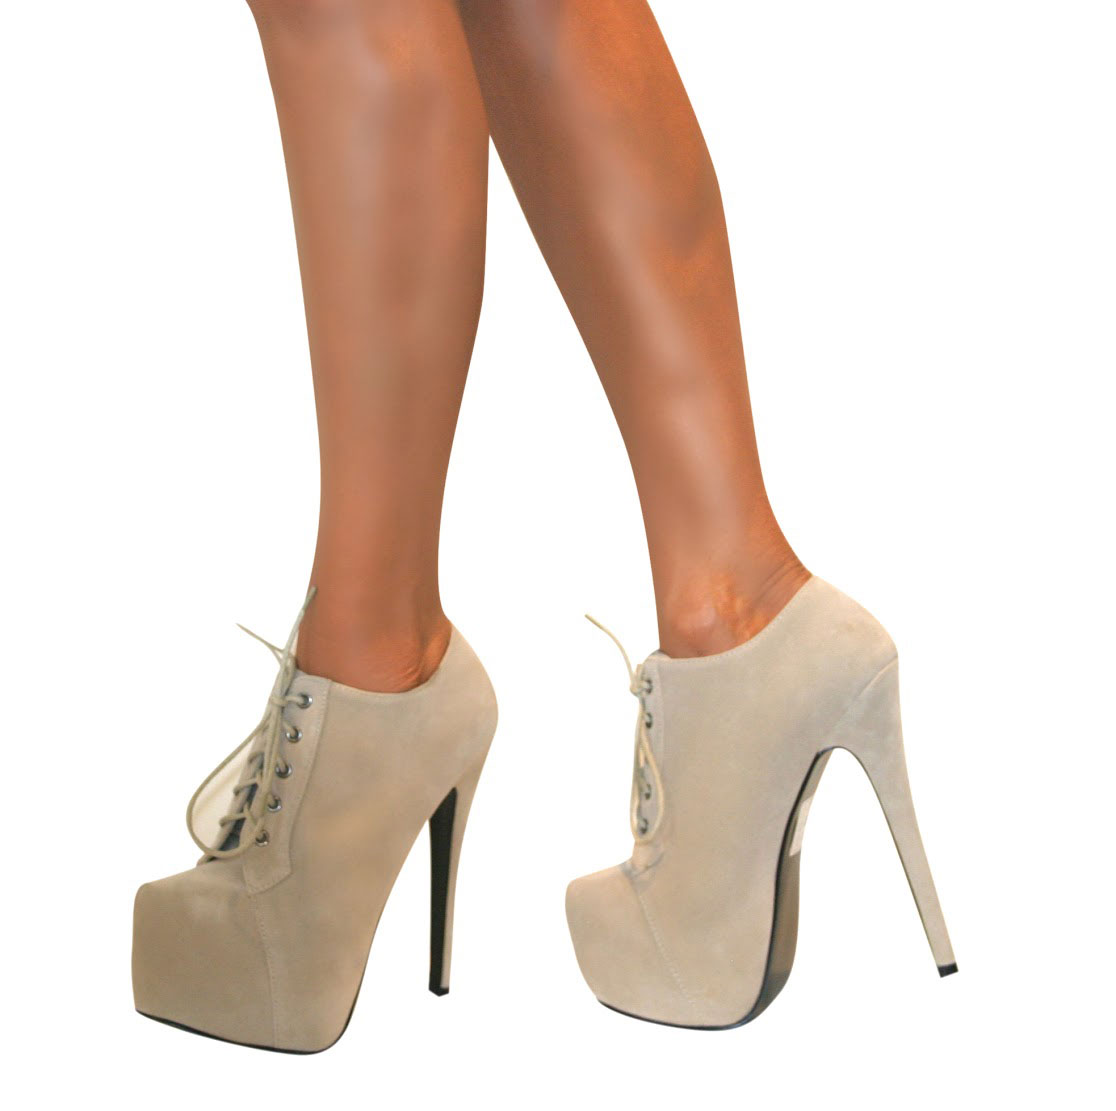 WOMENS-ANKLE-SHOE-BOOT-STILETTO-HIGH-HEEL-HIDDEN-PLATFORM-LACE-UP-SIZE-BOOTIE